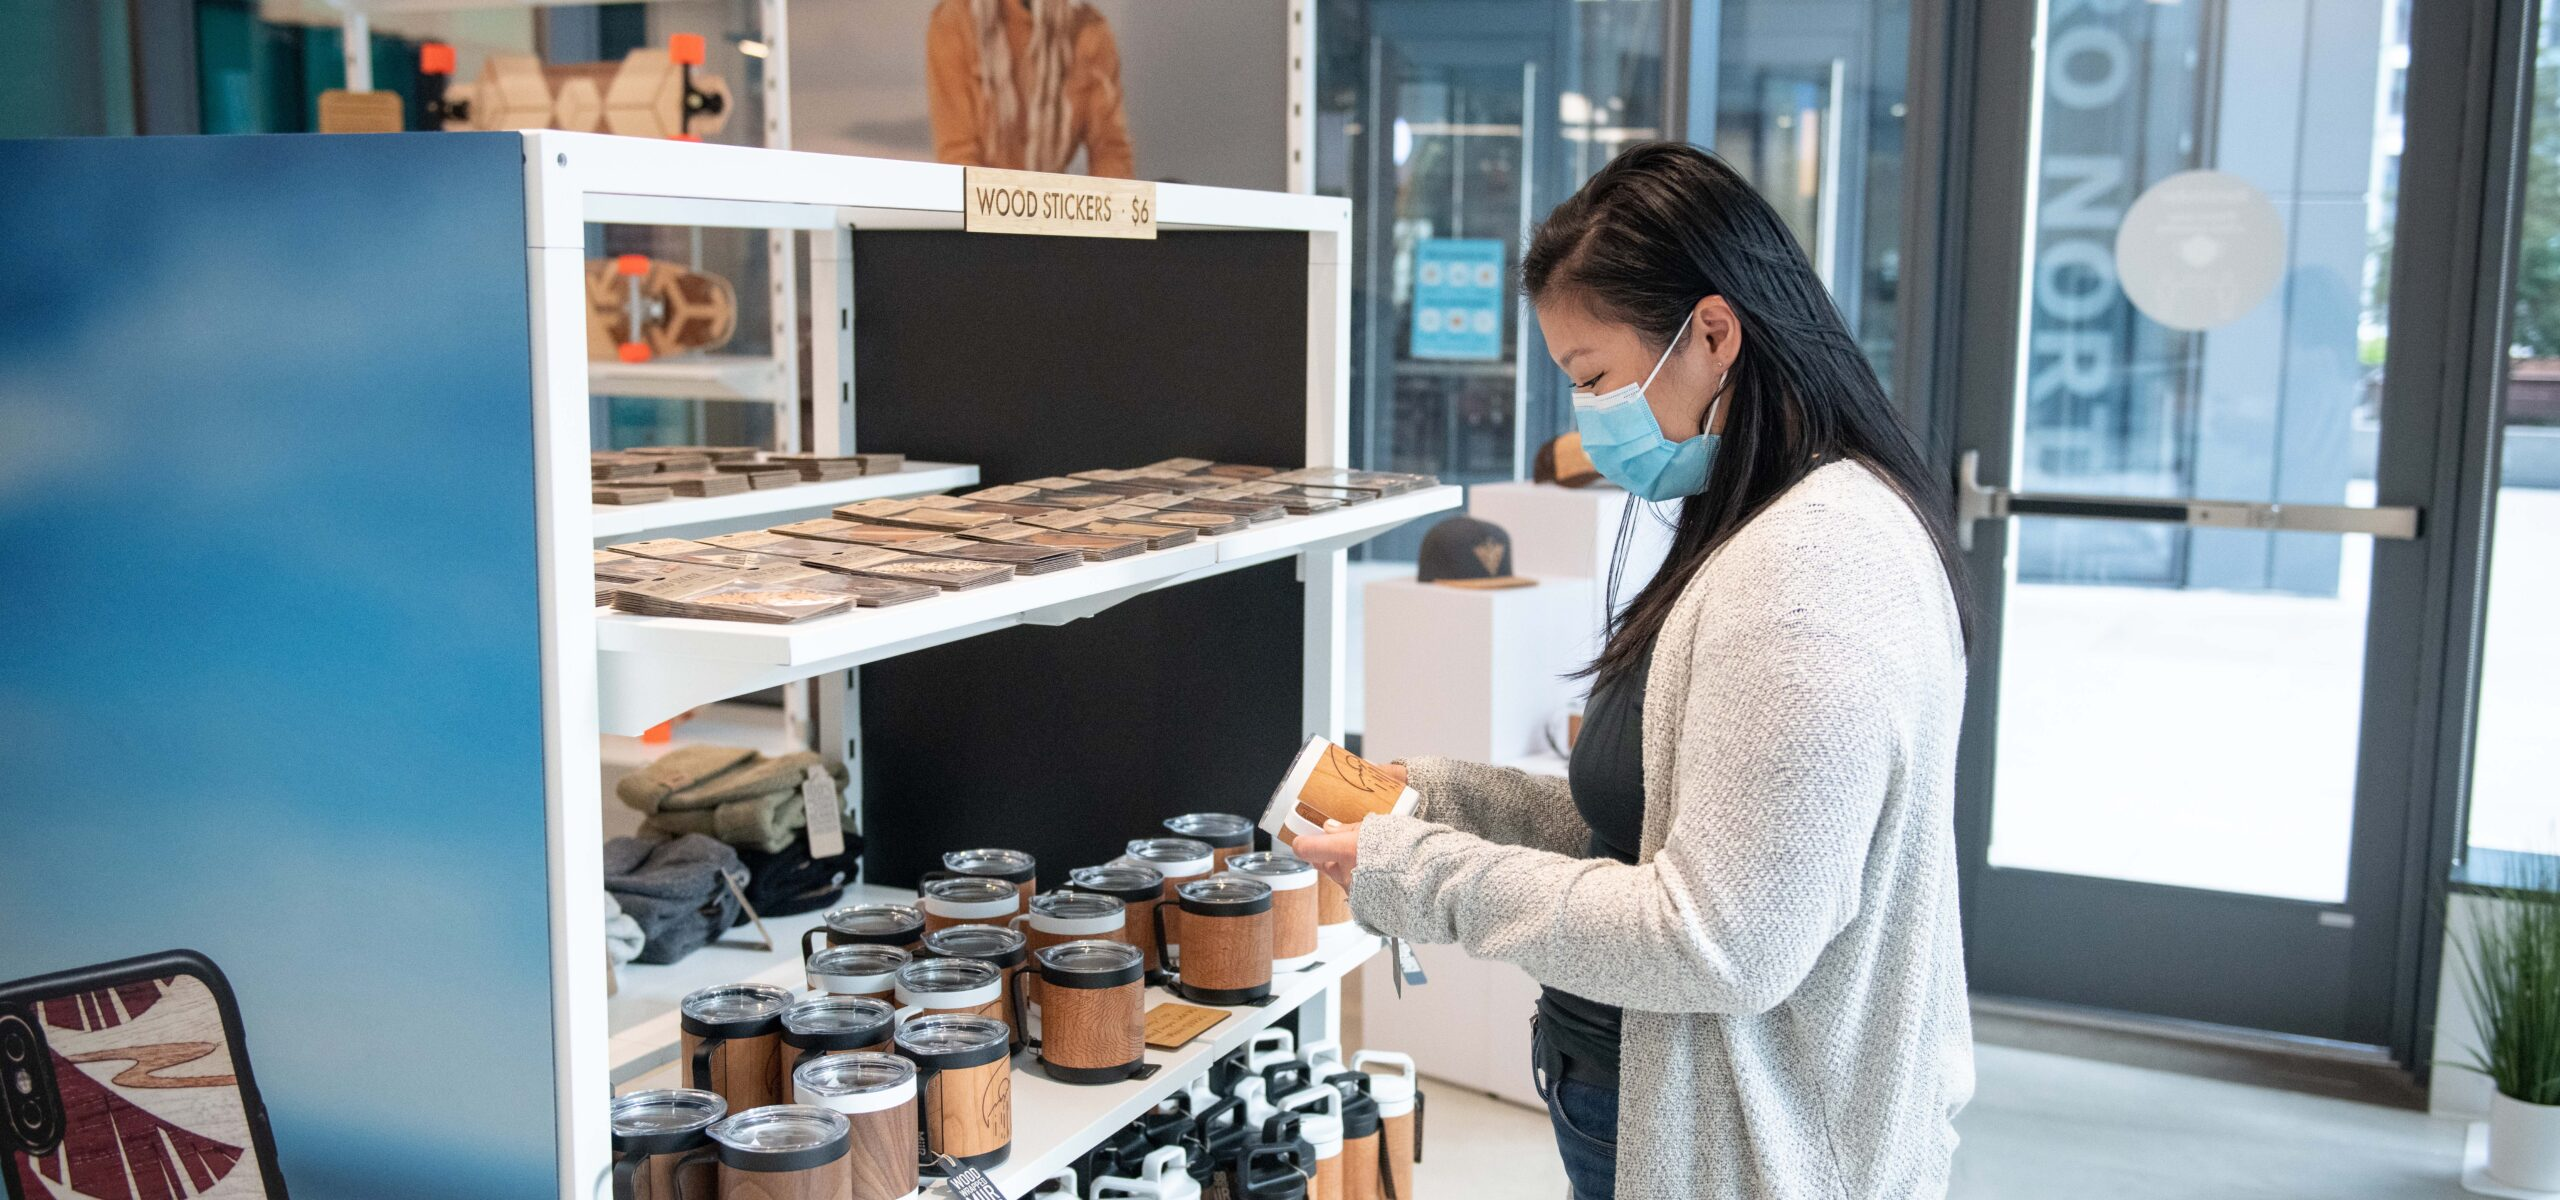 Woman looking at wooden handmade phone cases and tumblers.